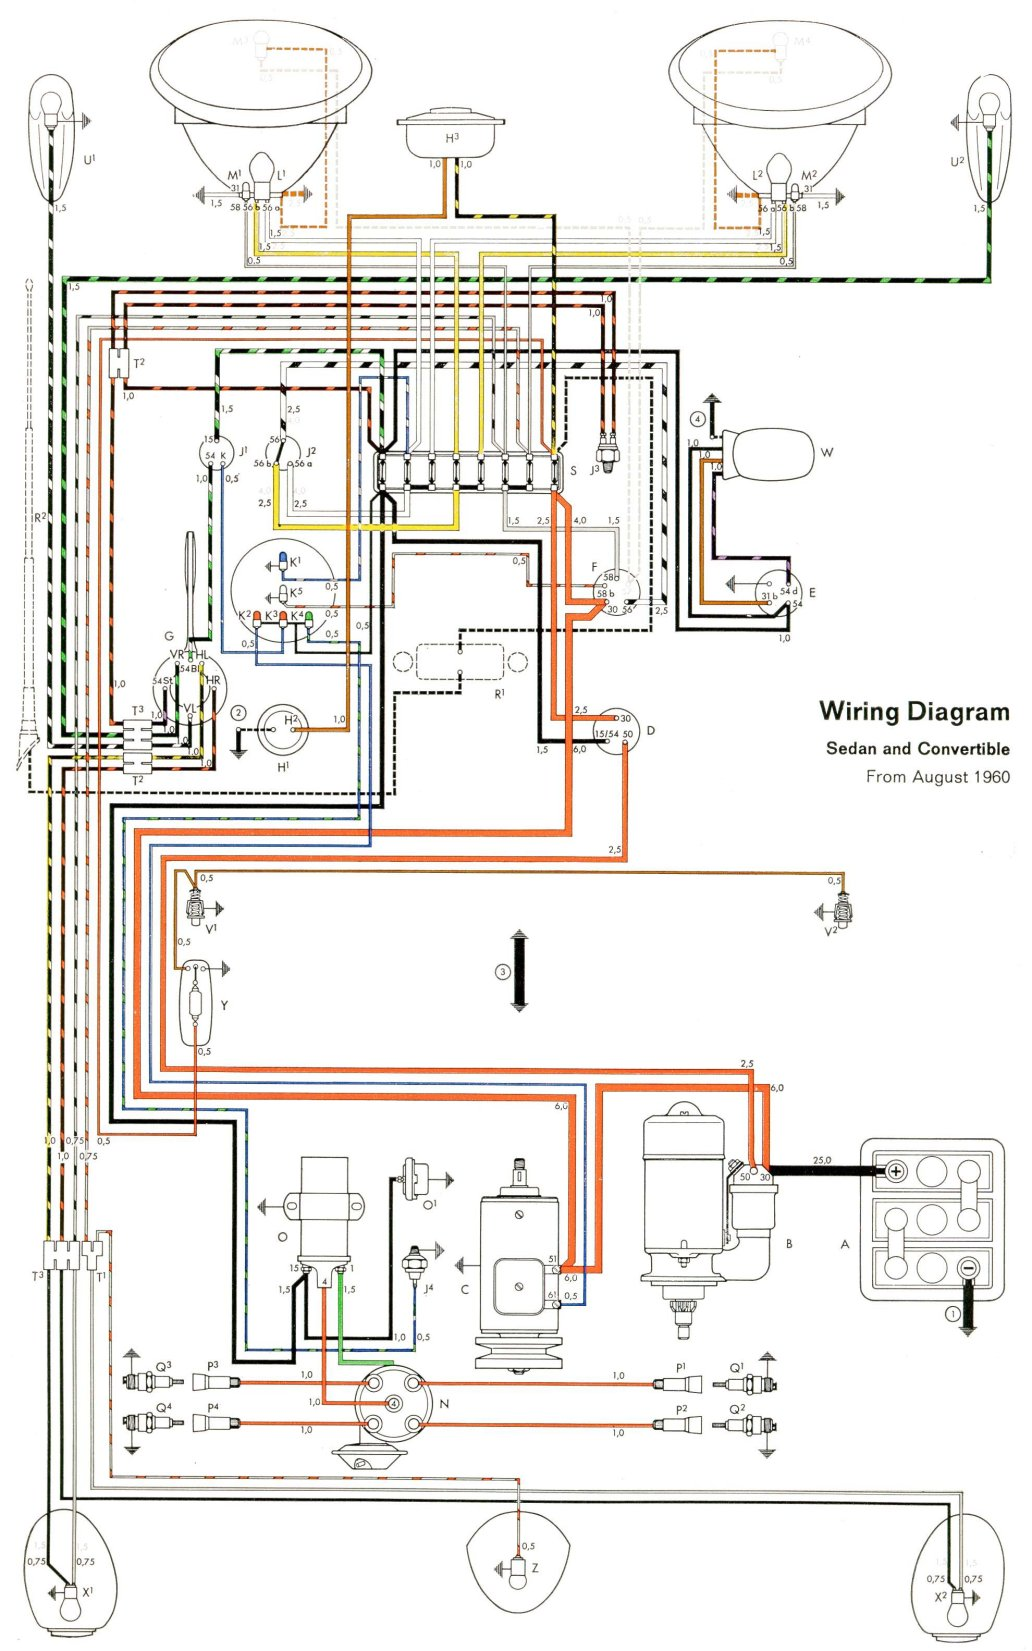 75 Super Beetle Wiring Diagram Explore Schematic 71 Bug Thesamba Com Type 1 Diagrams Rh 64 Volkswagen Vw